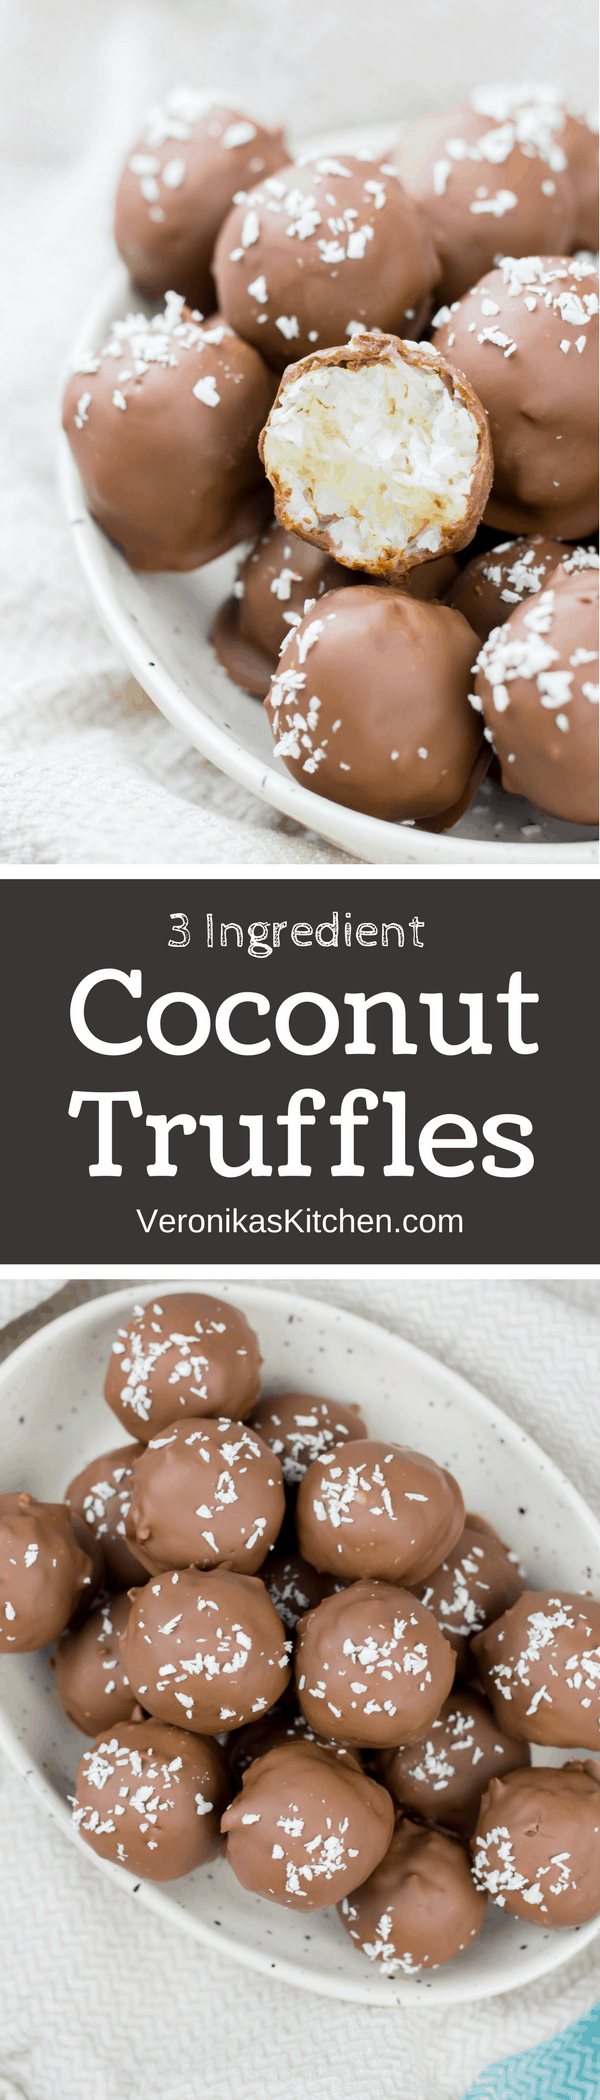 3 Ingredient Coconut Truffles are scrumptious and easy to make chocolate covered coconut candies. This is a great bite-size no-bake dessert recipe idea which will surprise your guests!